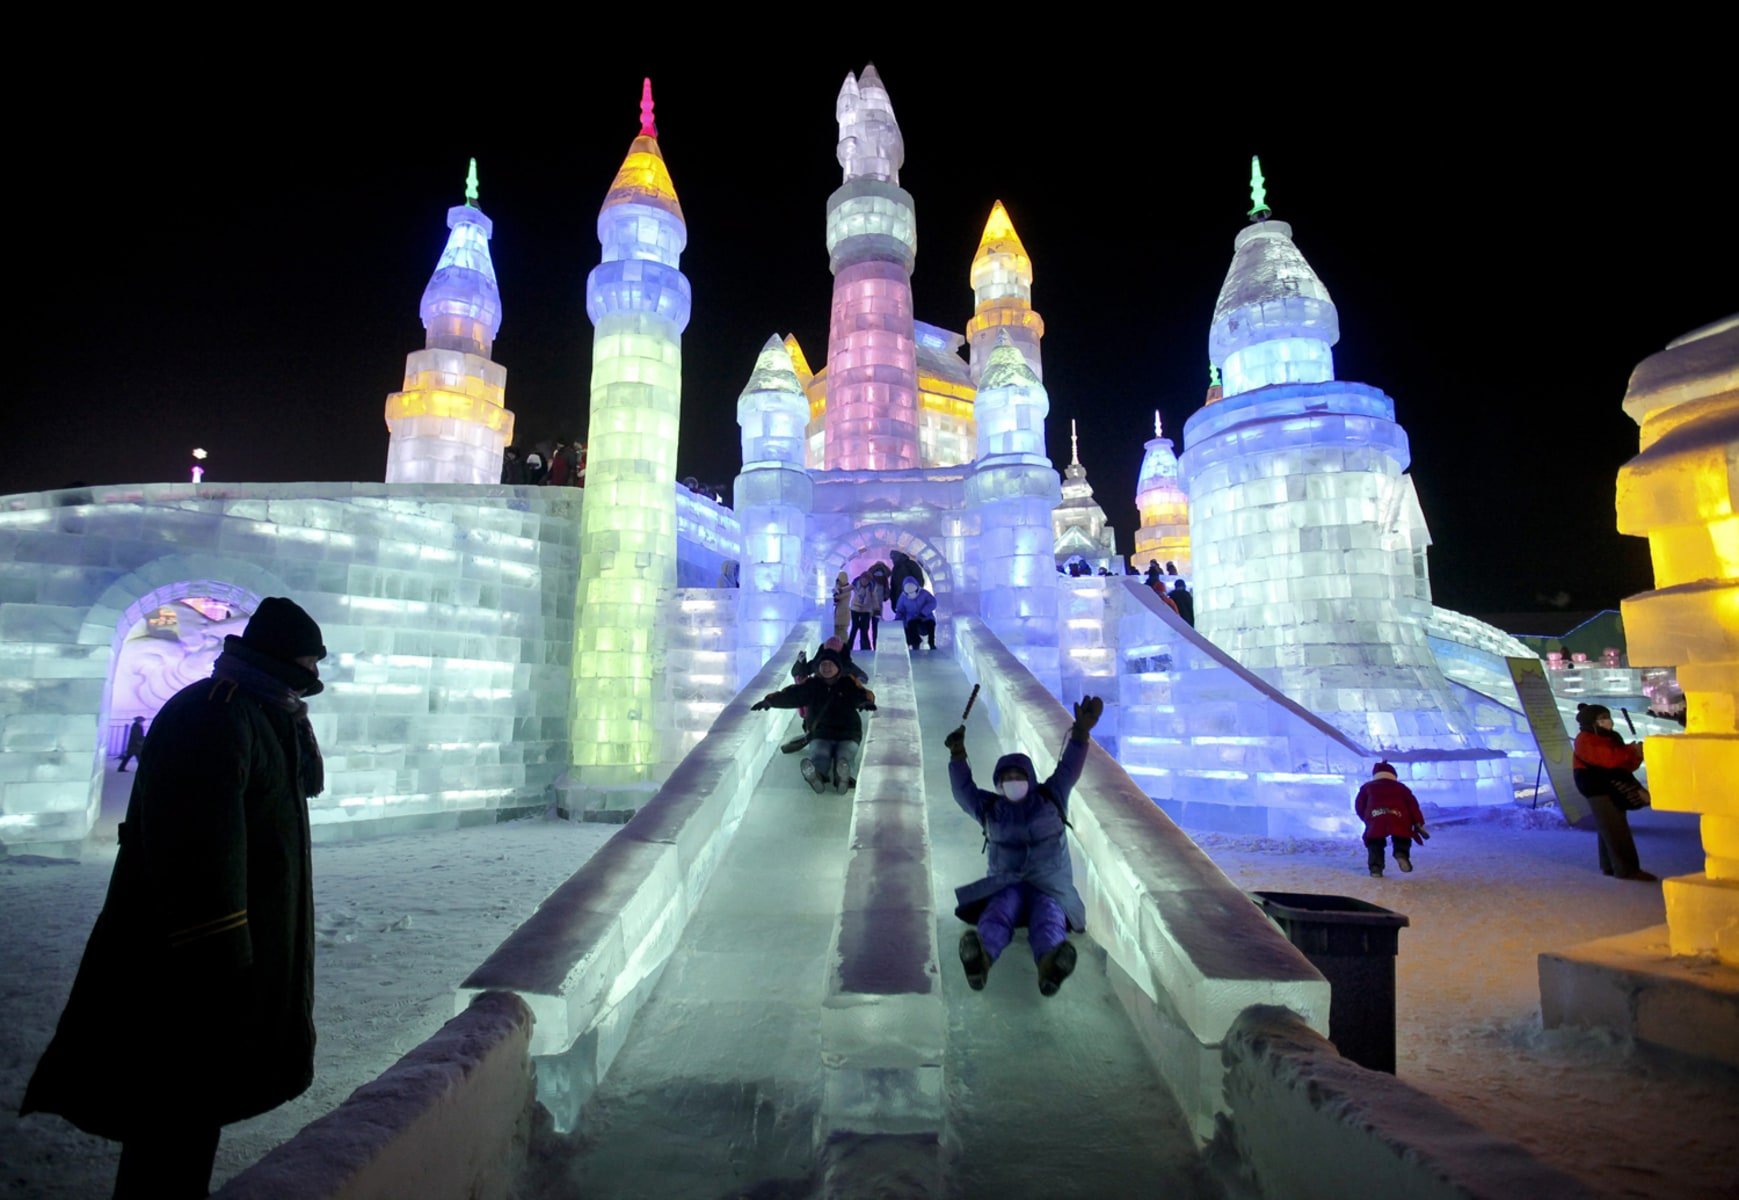 Image: Harbin International Ice and Snow Festival, China